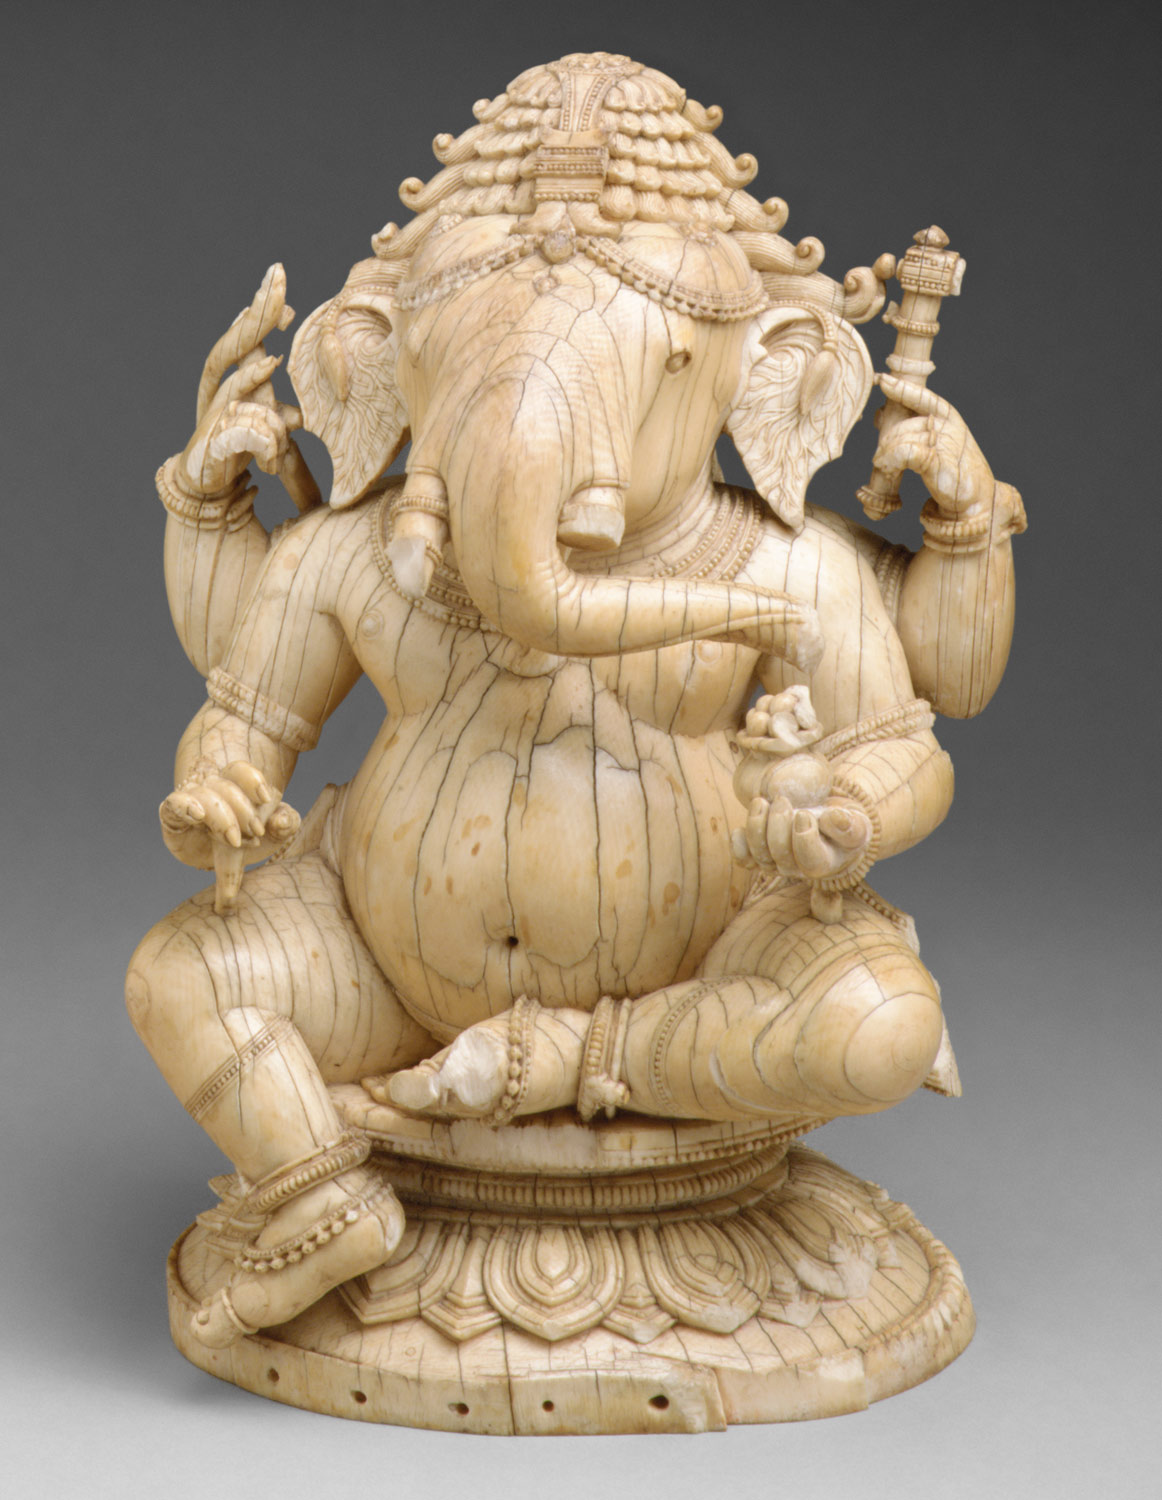 hinduism and hindu art essay heilbrunn timeline of art history seated ganesha